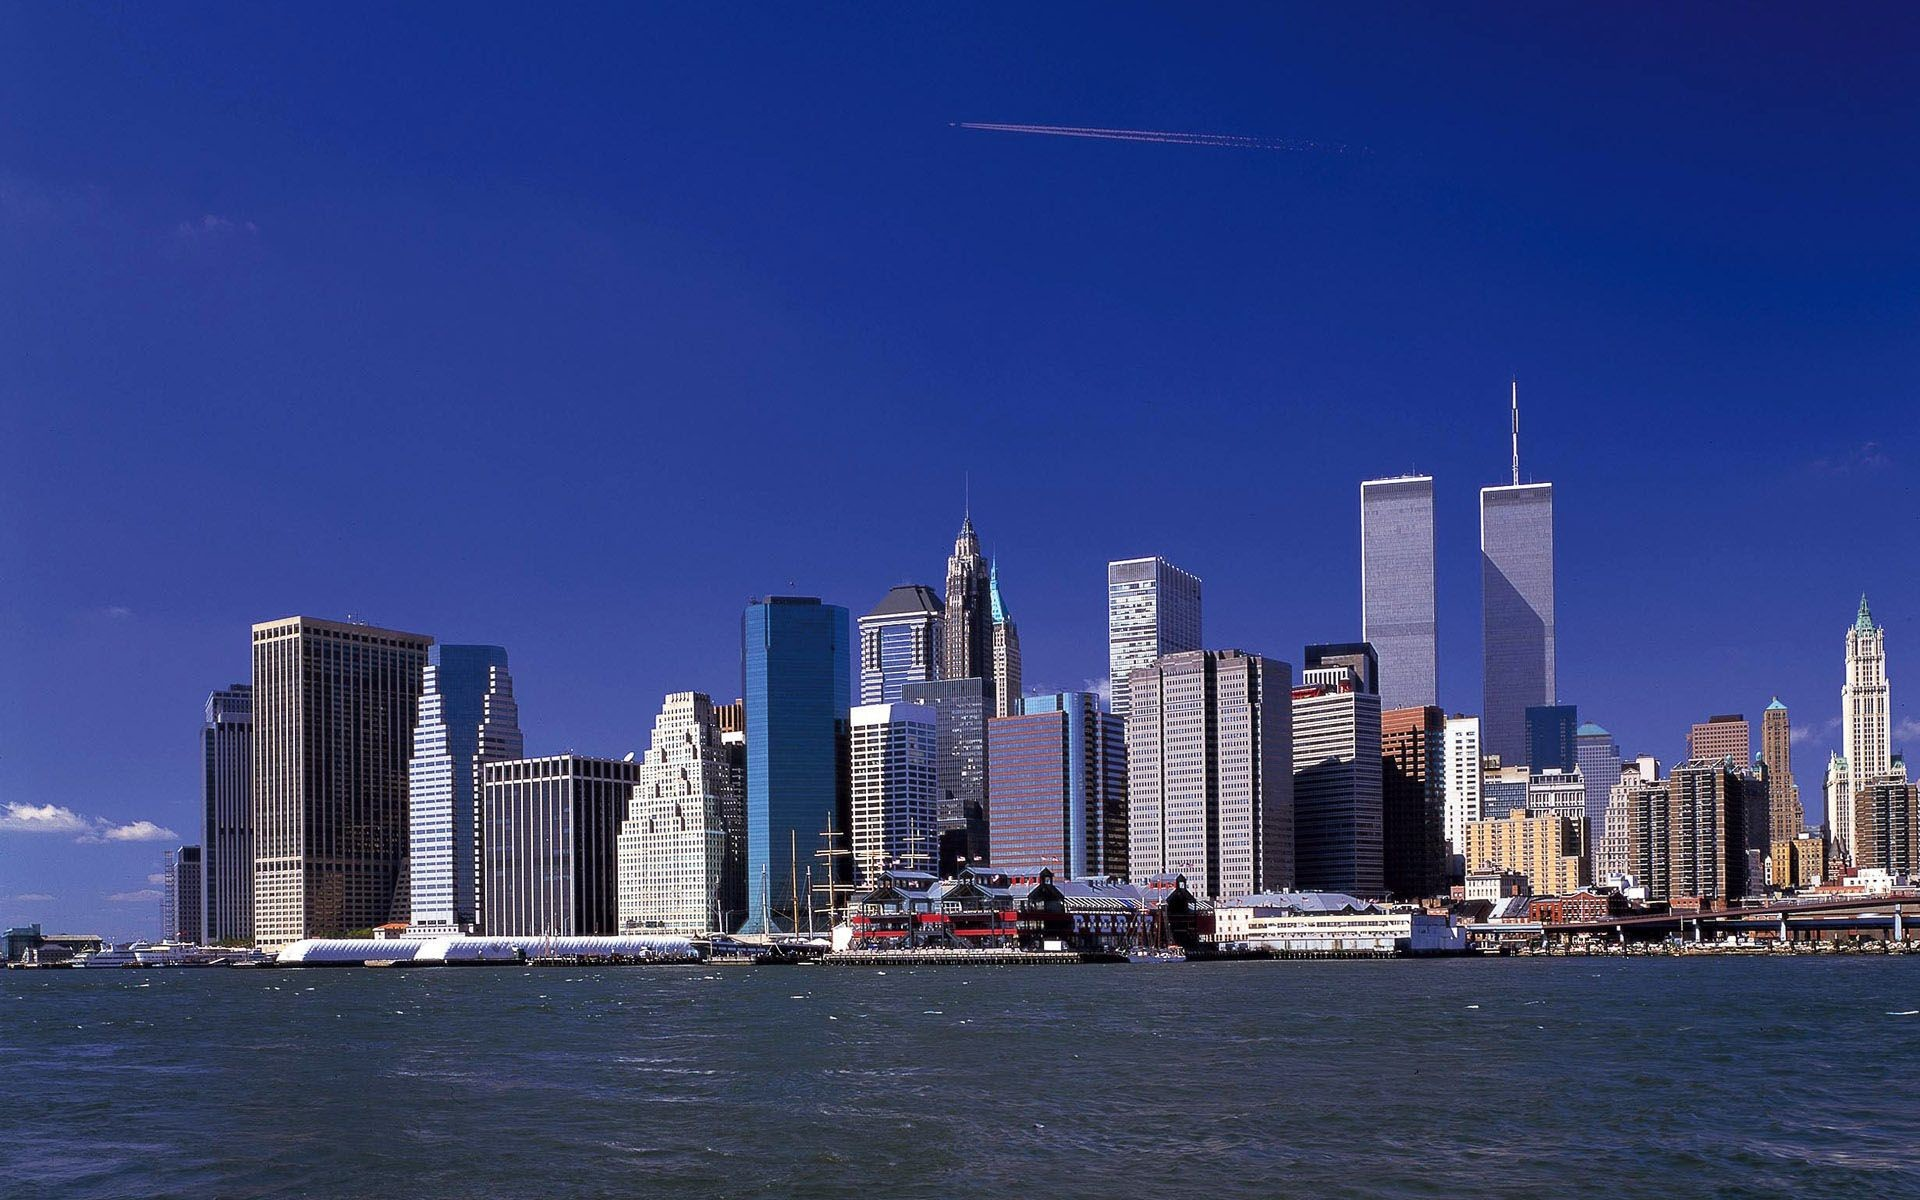 1920x1200 Collection of New York Skyline Wallpaper on HDWallpapers 1920×1200 New York  Skyline Wallpaper (